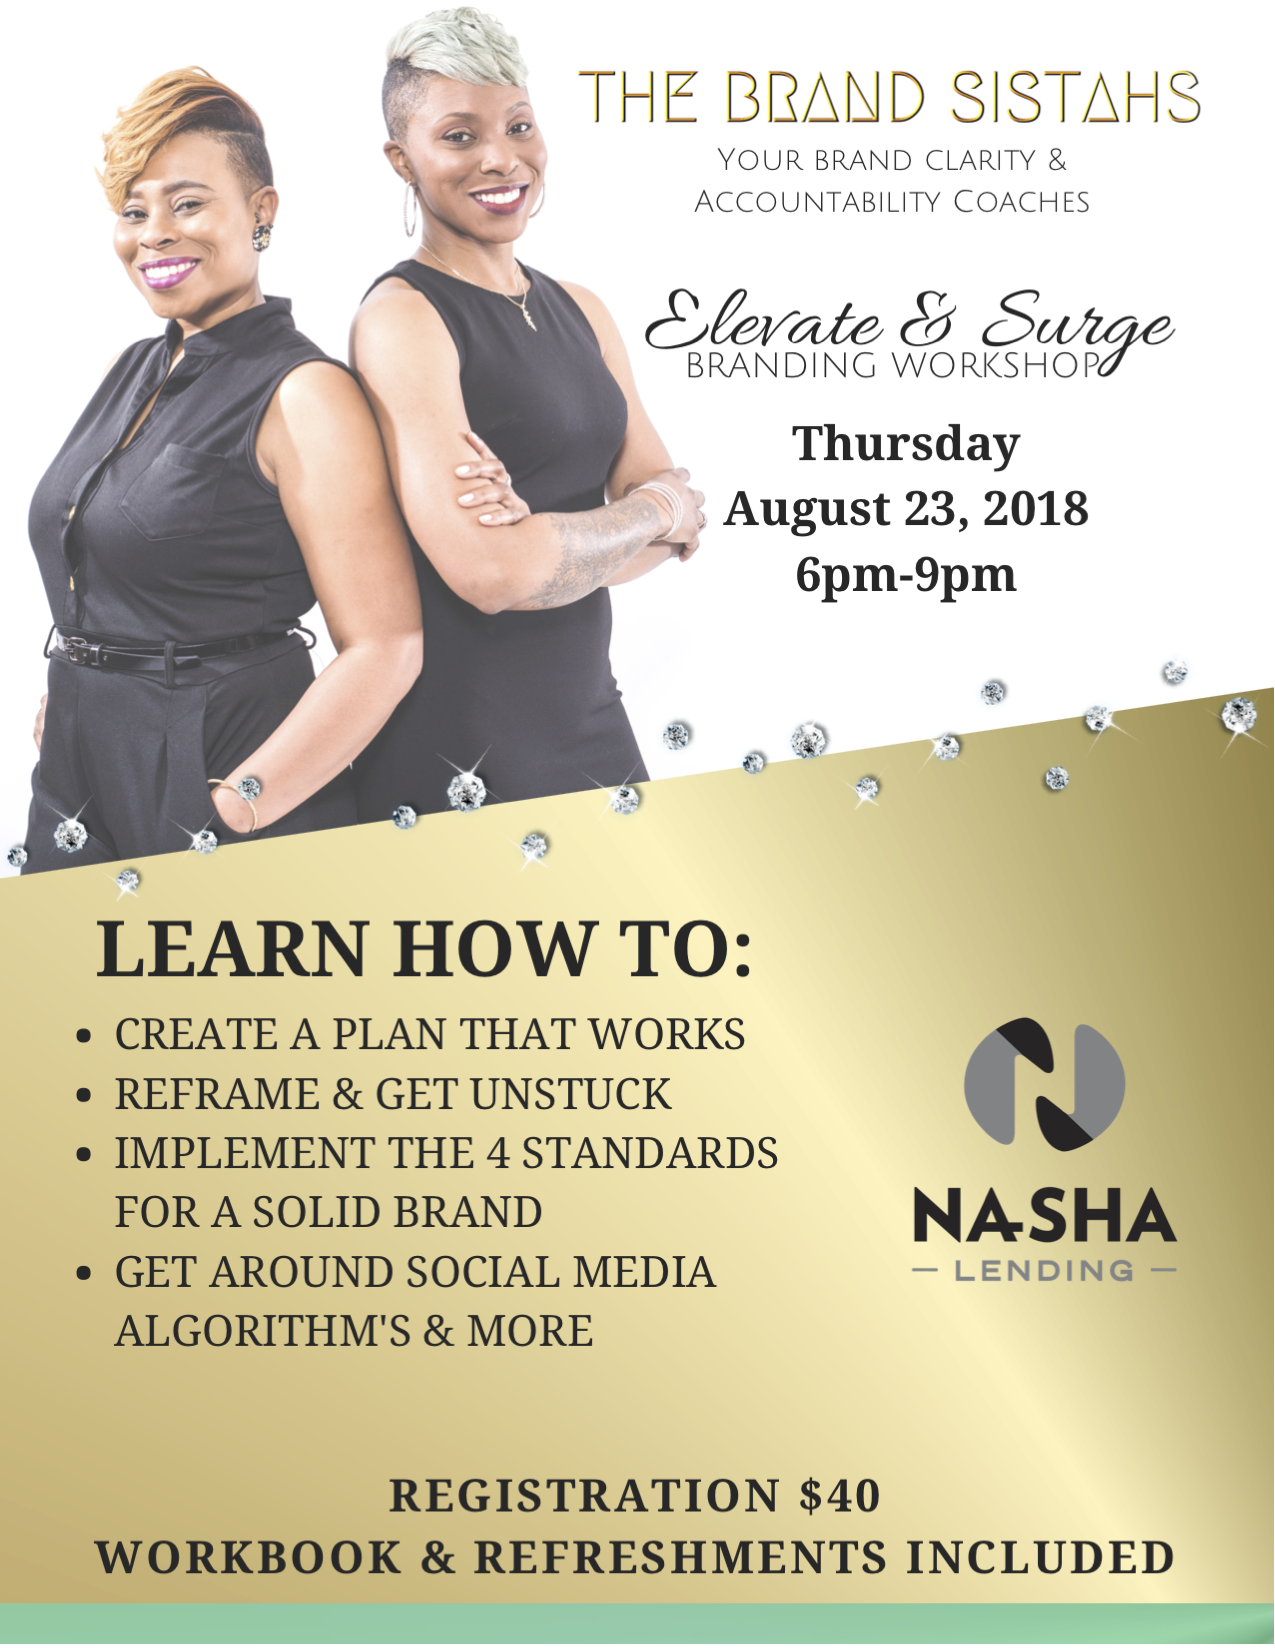 Elevate & Surge - Come out 8/23/18 to get the tools you need to take your business, brand or idea to the next level. What you will walk away with:-How to create a proper plan & execute it-How to reframe and get unstuck so you can move forward.-Learn the 4 keys of a solid brand-How to create effective ads and MORE!If any of these points hit home you need to be in the building. Get your ticket today!Date: August 23, 2018Thursday 6:00pm-9:00pmTextile Hall | 582 Perry Ave, Greenville, SC 29611Cost: $40Please register HERE